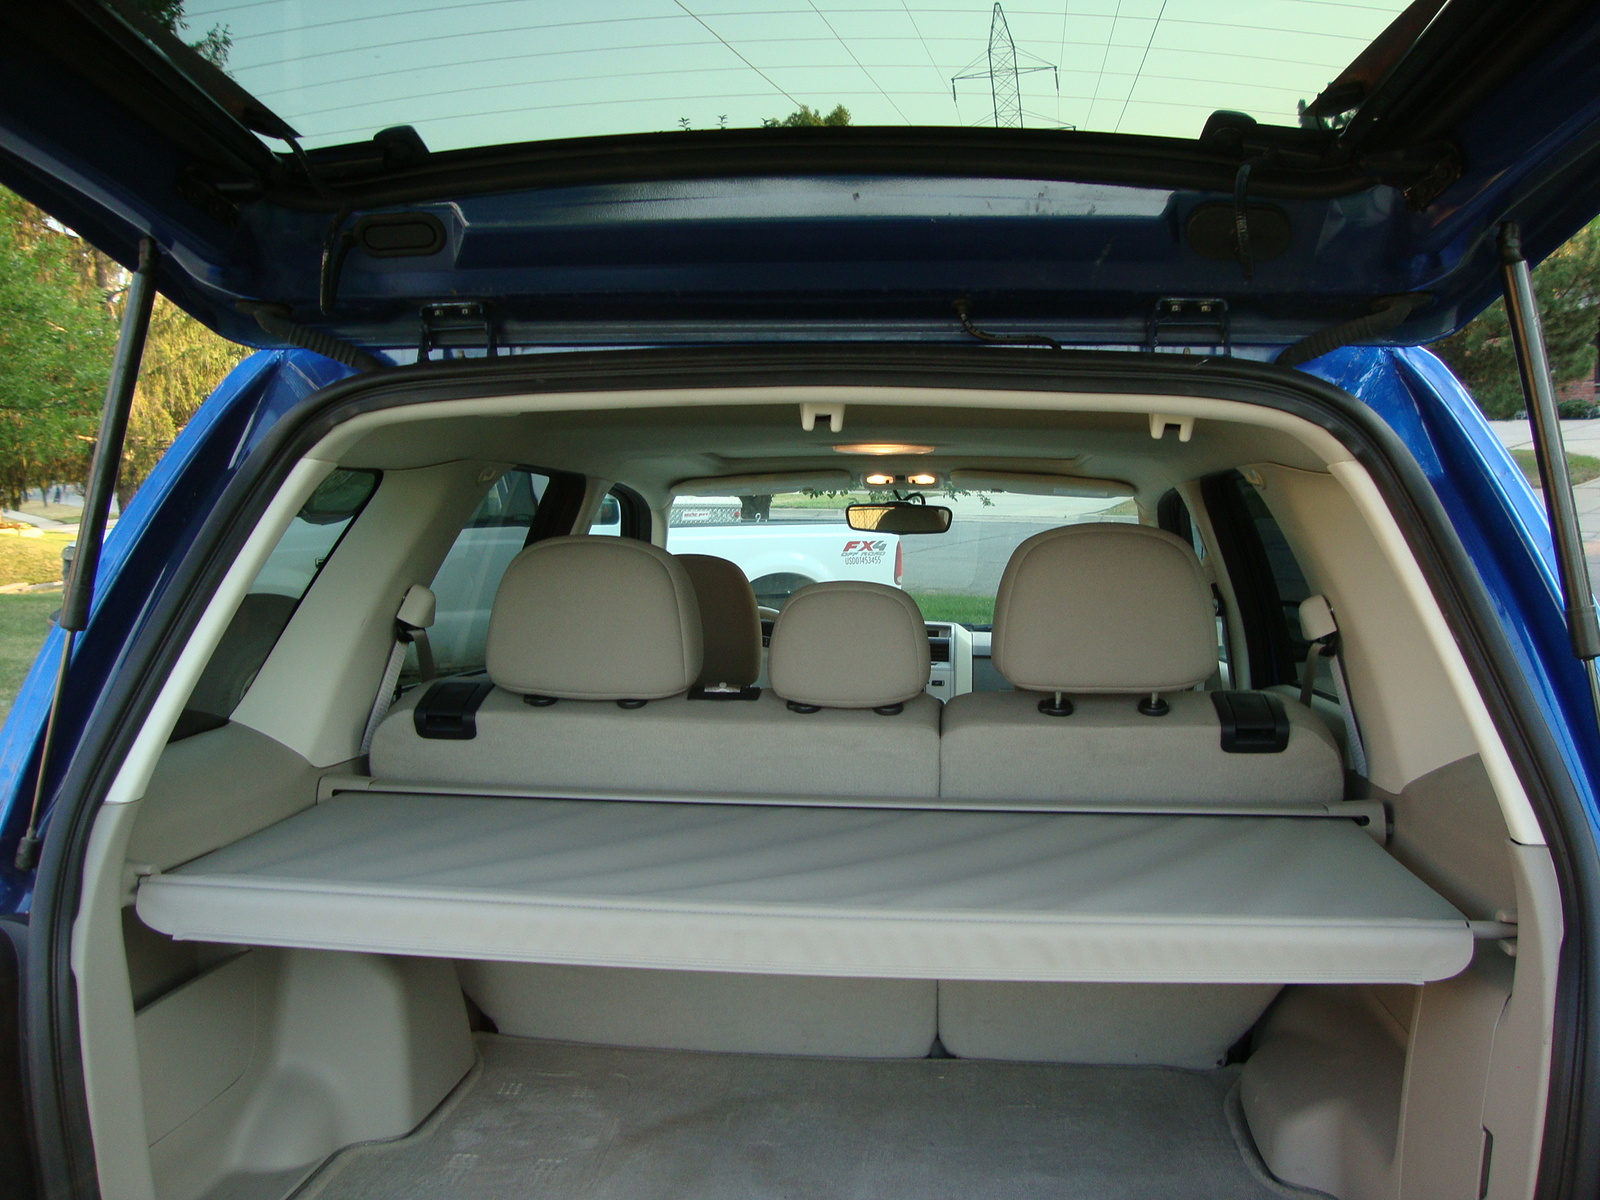 2011 Ford Escape Interior Pictures Cargurus